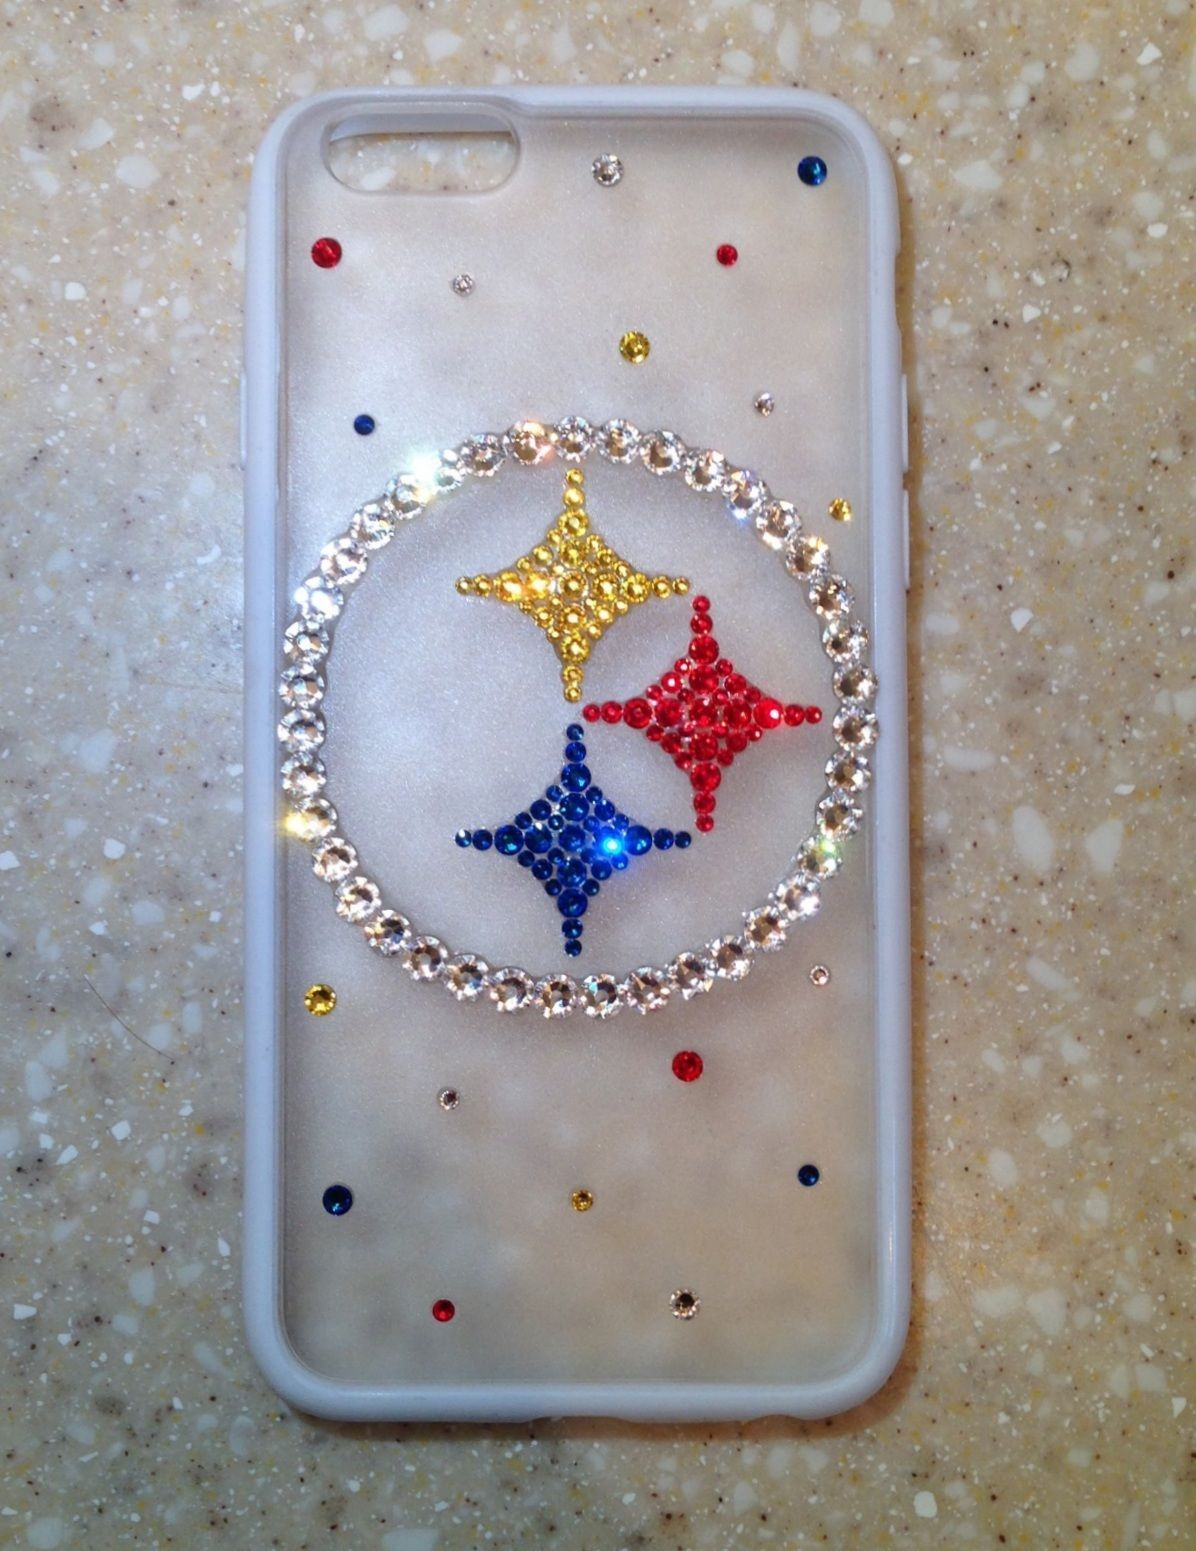 b710612c2 Steelers Case iPhone 6 6 Plus S4 S5 Note 3 Note 4 Made with Swarovski  Crystals | eBay